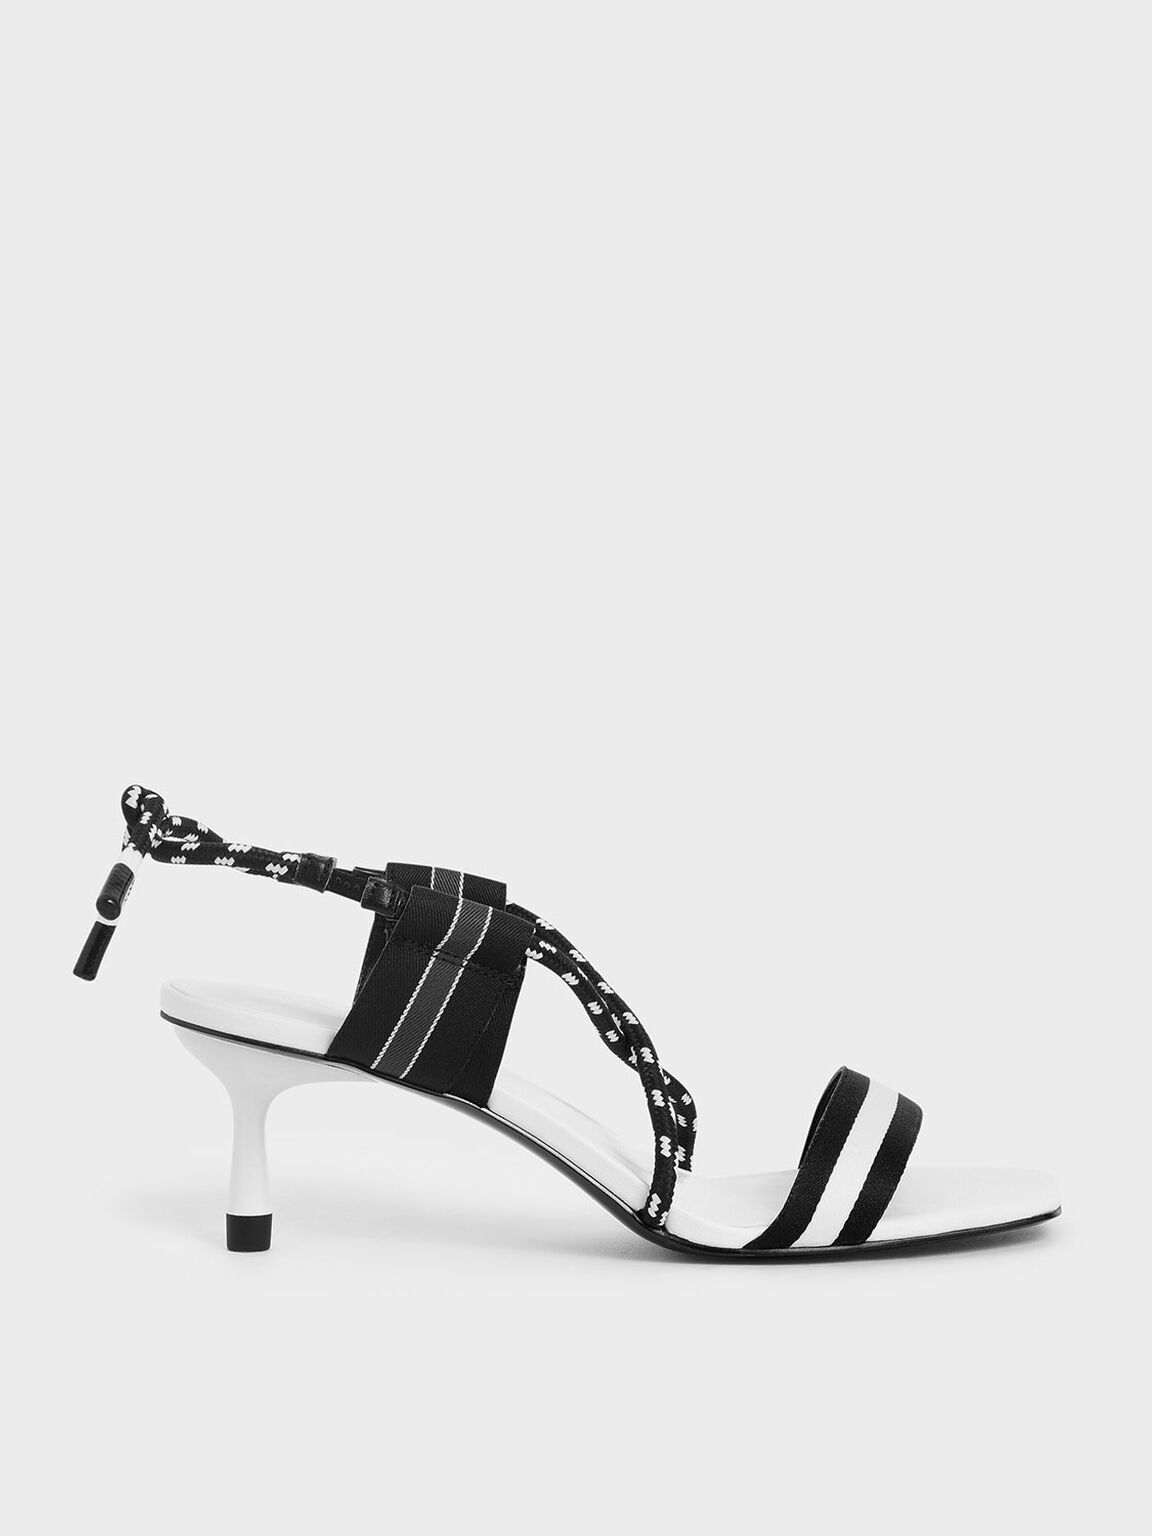 Two-Tone Grosgrain & Rope Strappy Sandals, White, hi-res